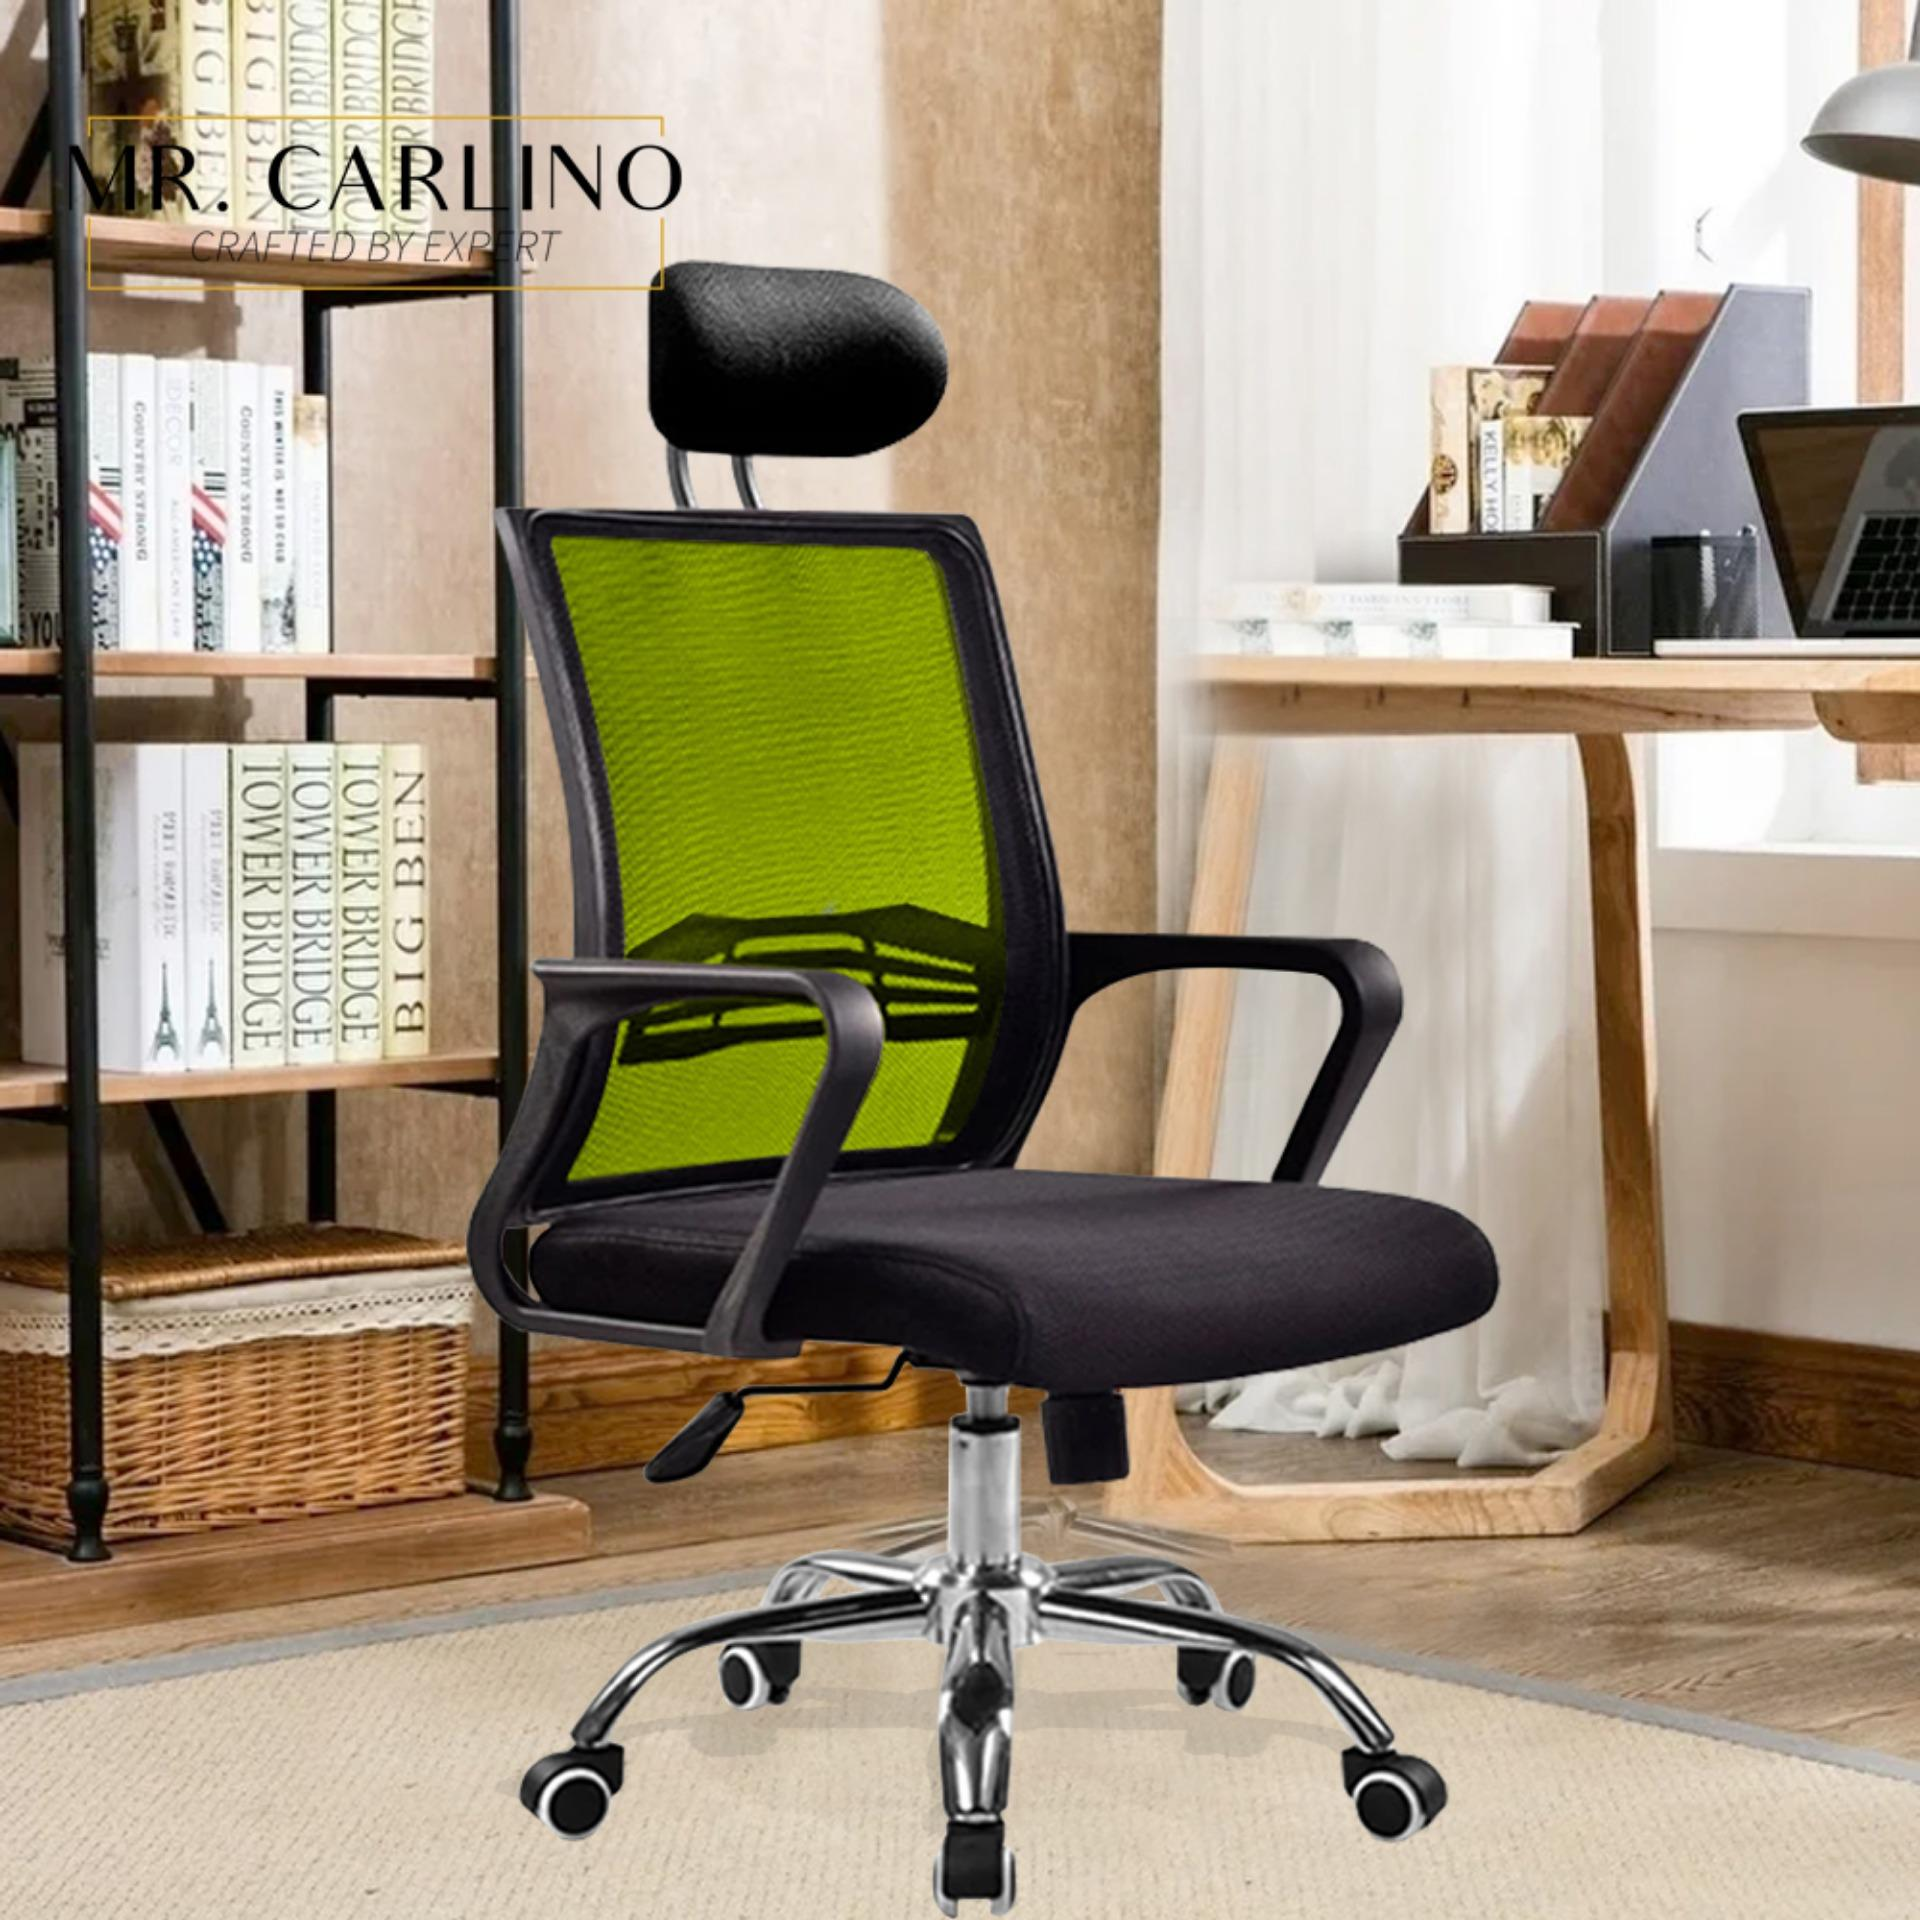 HANSEN Breathable Mesh Large Swanky with Headrest Swivel Office Chair